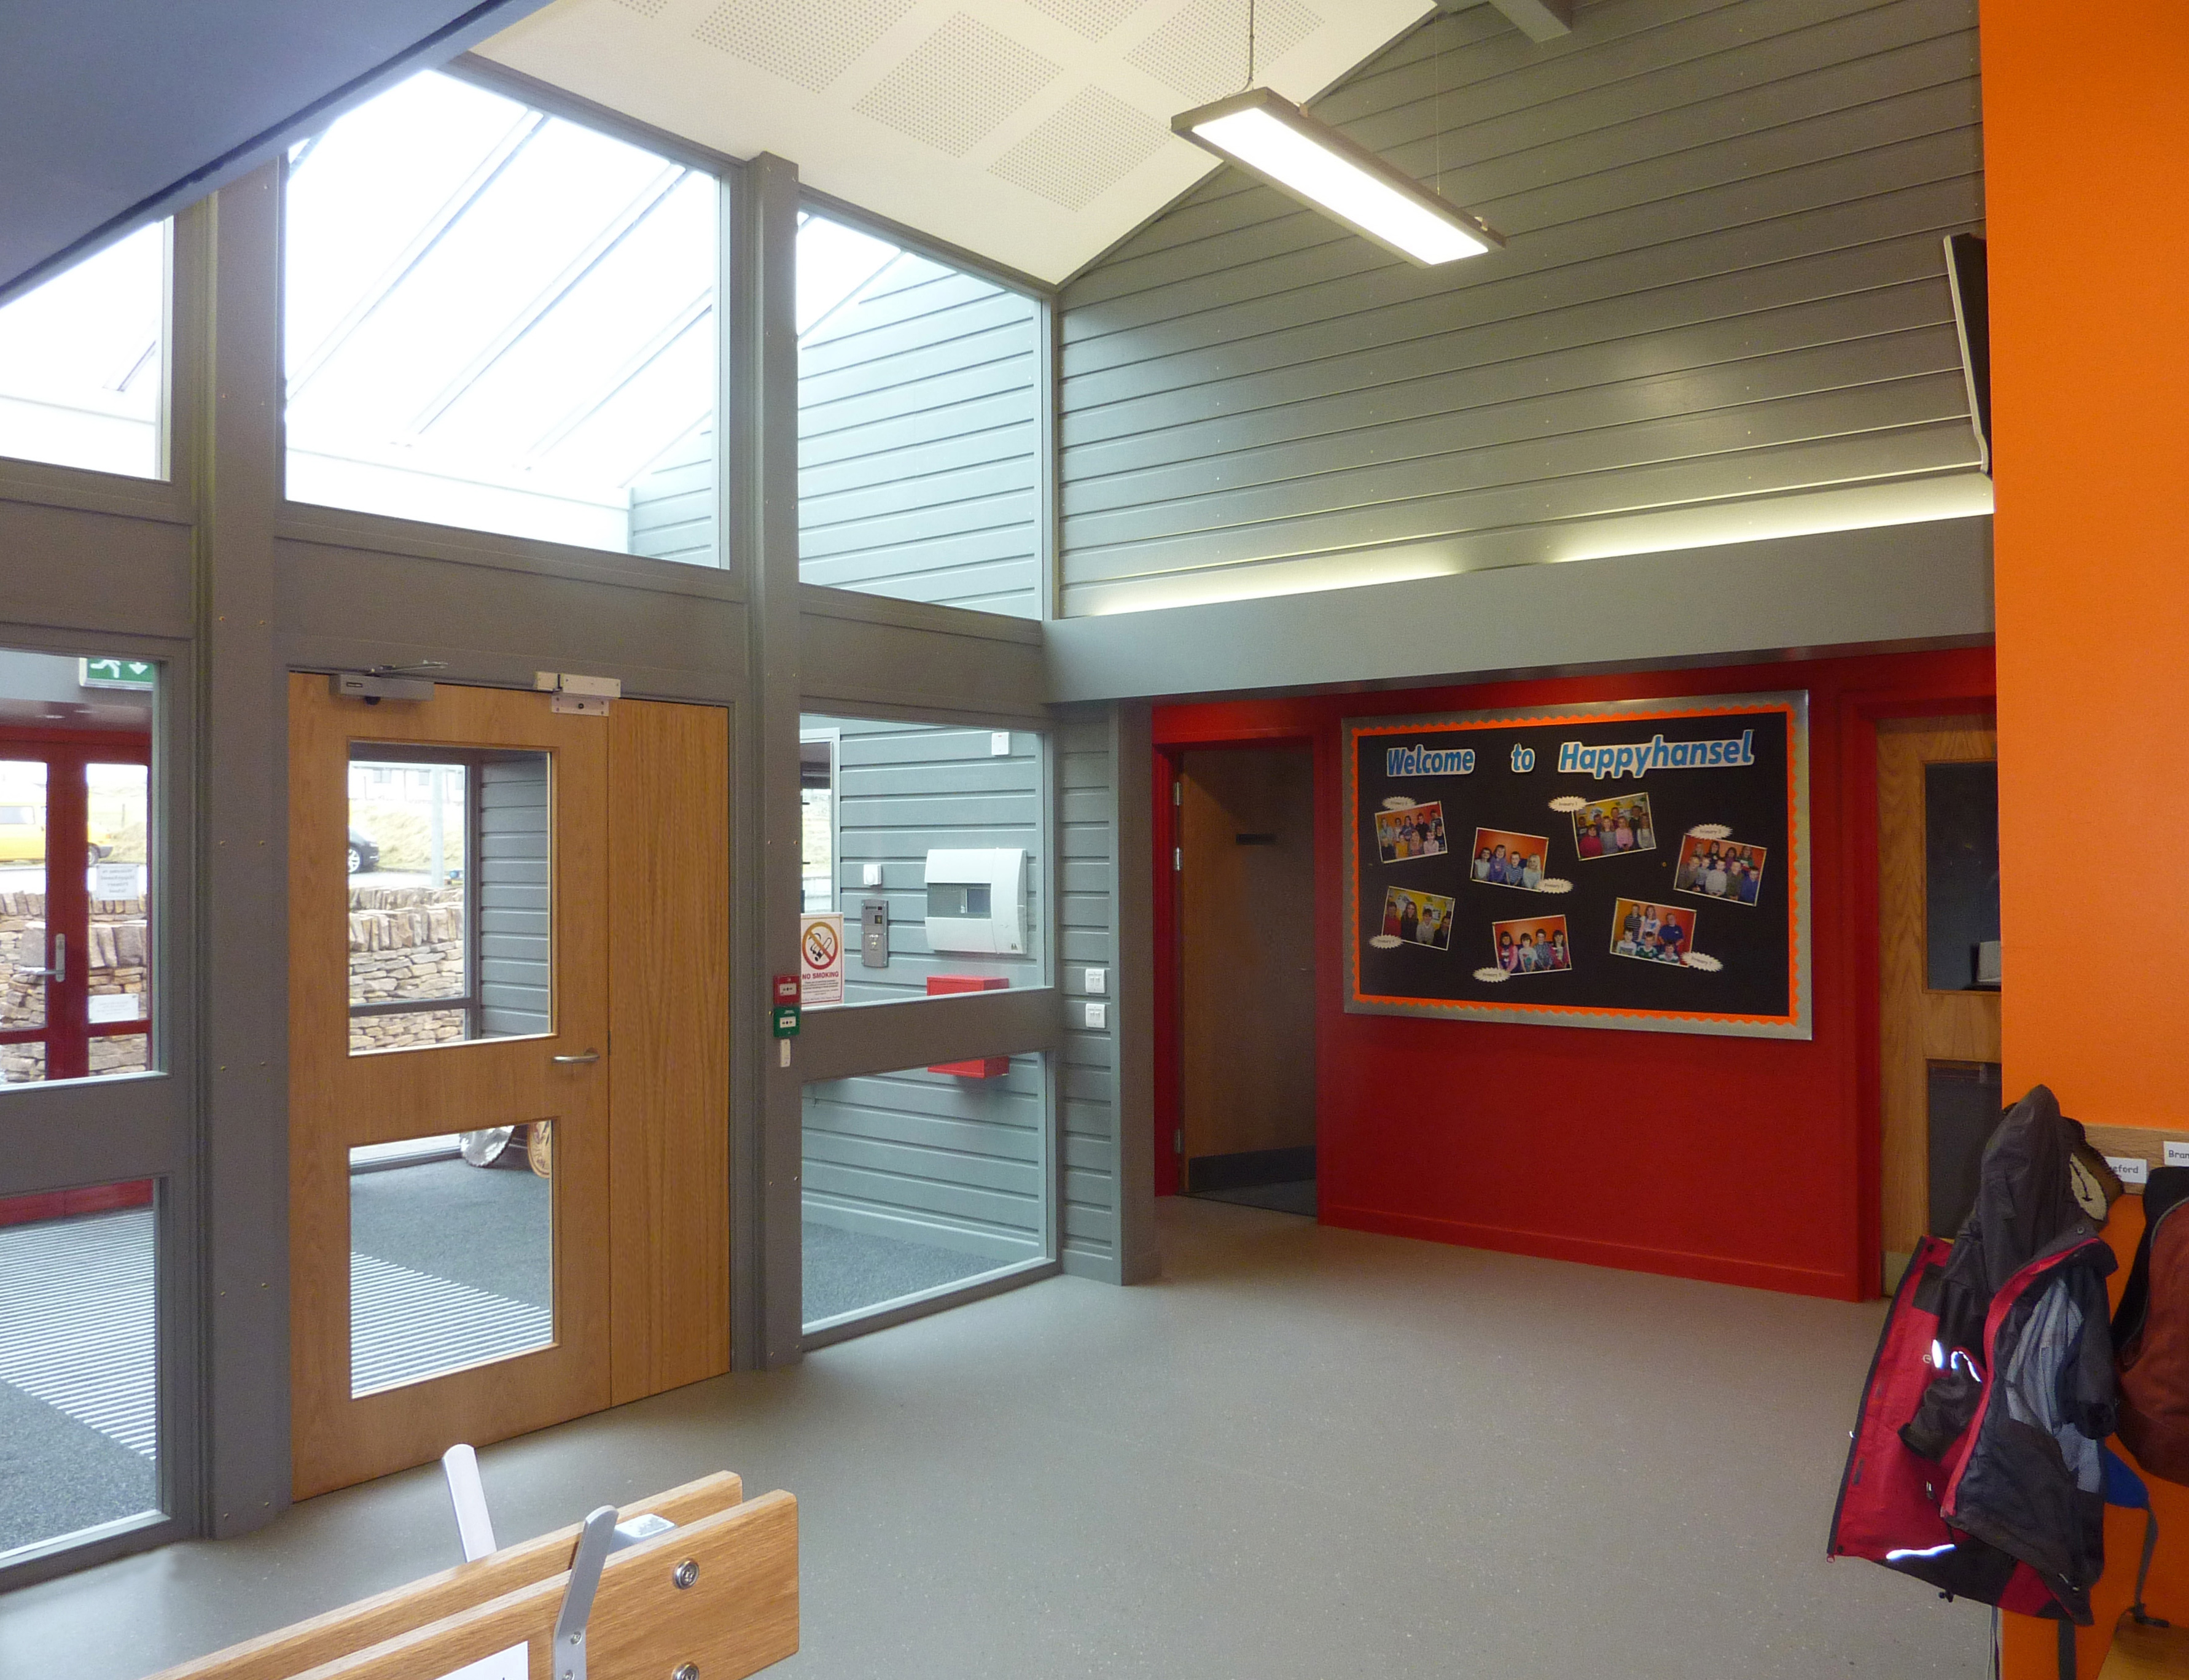 New Life For Existing Buildings Redman Sutherland Architects Shetland Happyhansel Primary School entrance